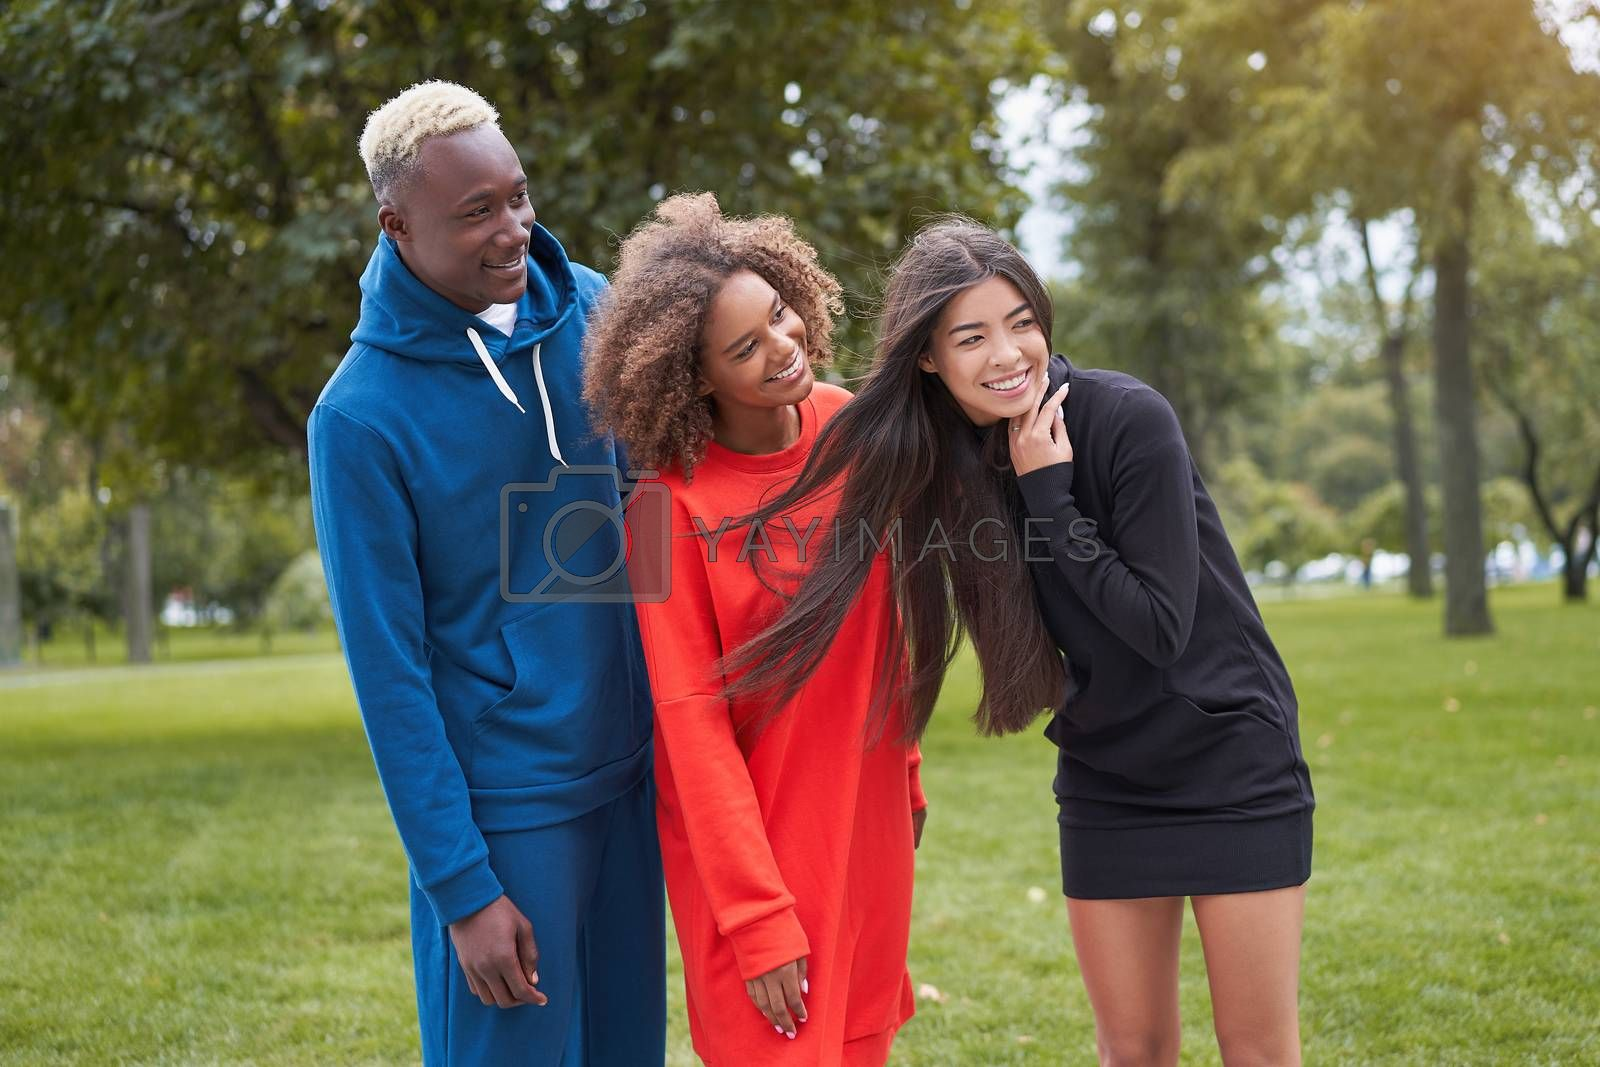 Multi ethnic friends outdoor. Diverse group people Afro american asian spending time together Multiracial male female student meeting outdoors